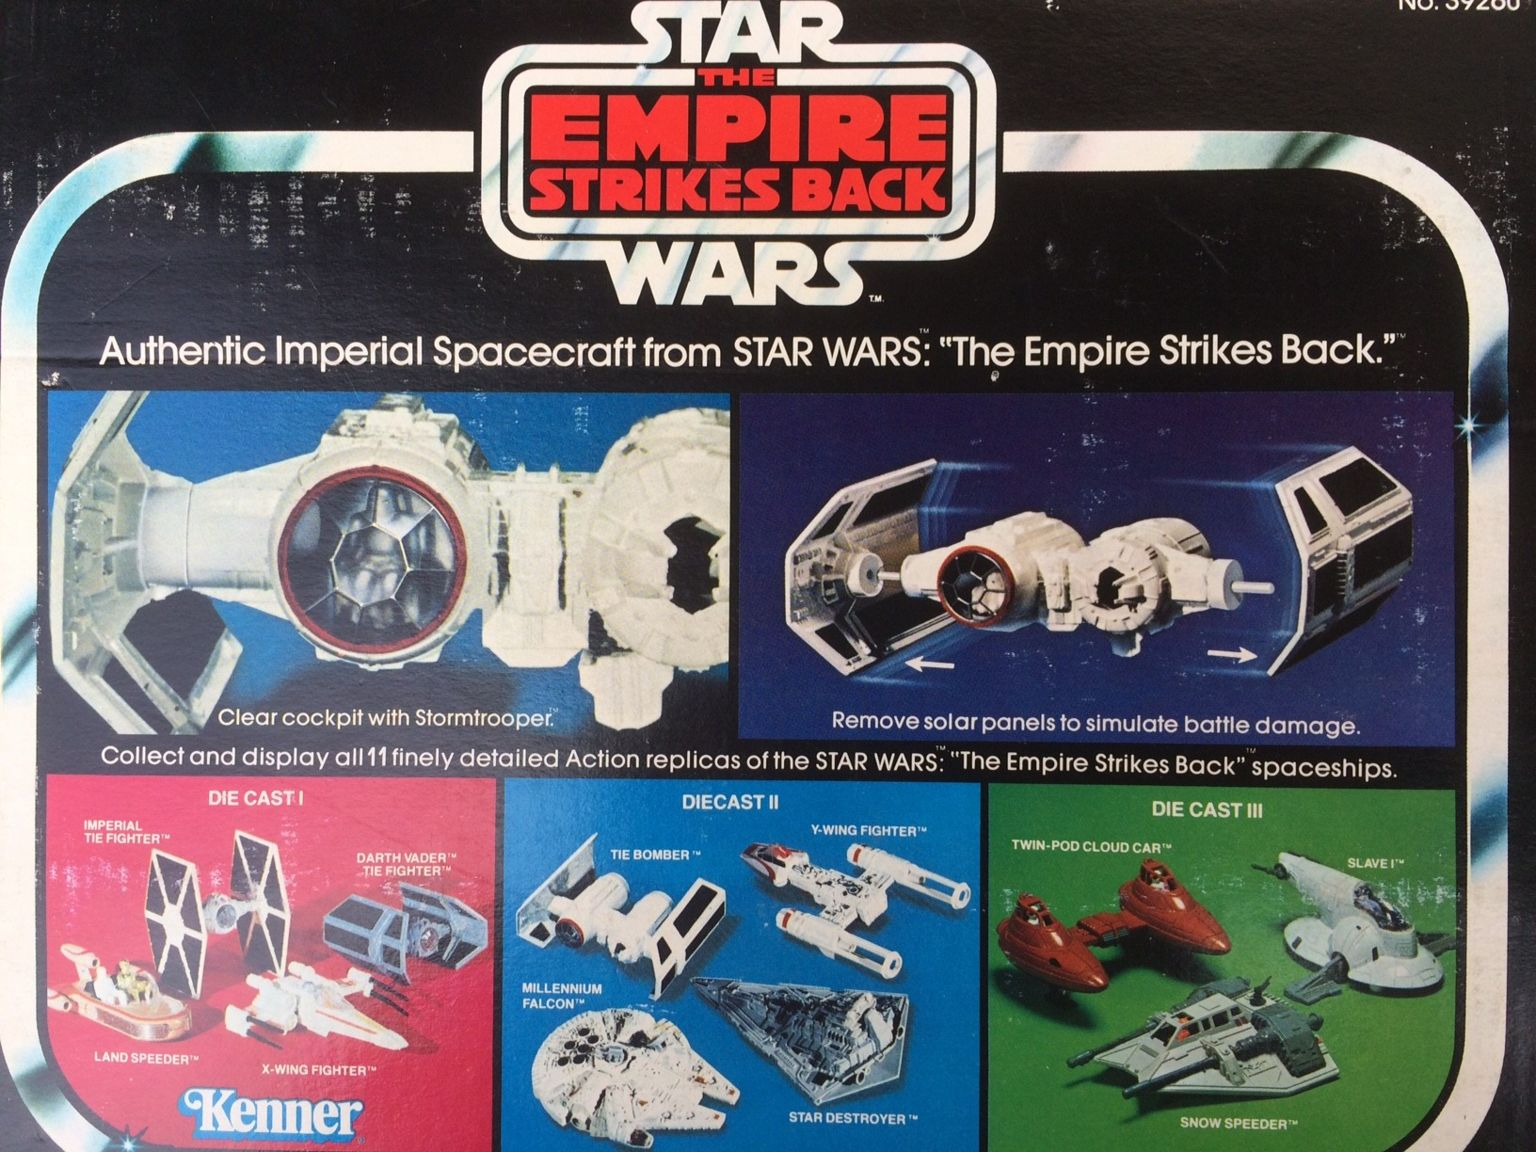 Back of the box of the authentic imperial spacecraft toy